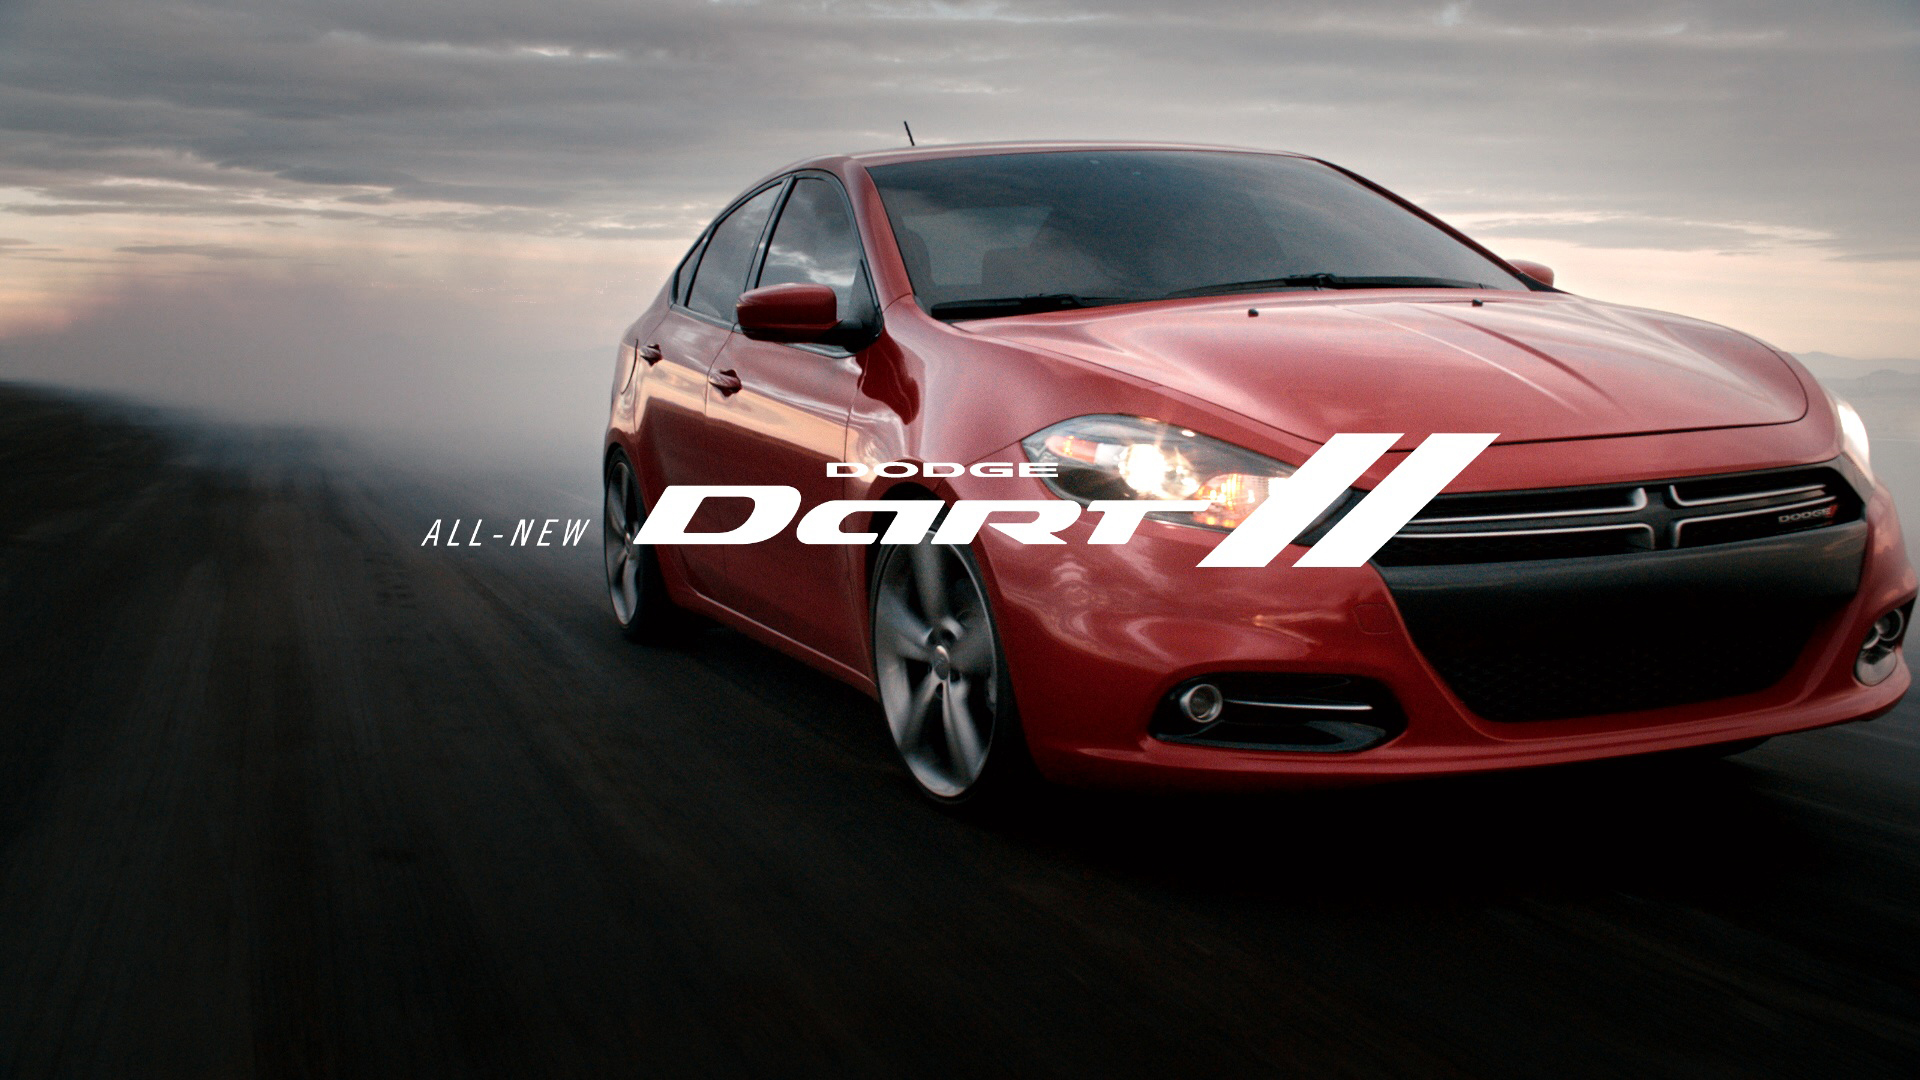 dodge brand launches new dodge dart tv ad as marketing. Cars Review. Best American Auto & Cars Review